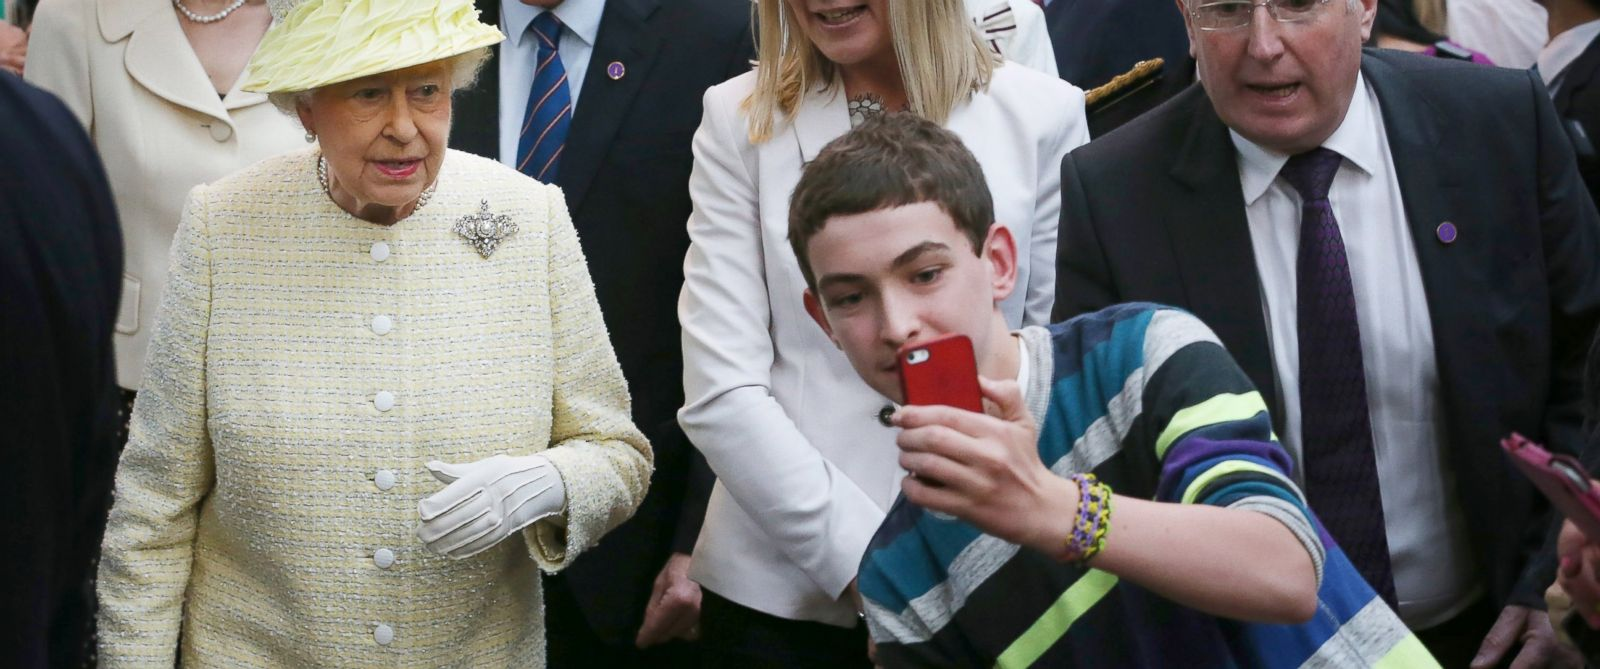 PHOTO: A teenager tries to take a selfie in front of Queen Elizabeth II during a walk around St. Georges Market in Belfast, Northern Ireland on June 24, 2014.